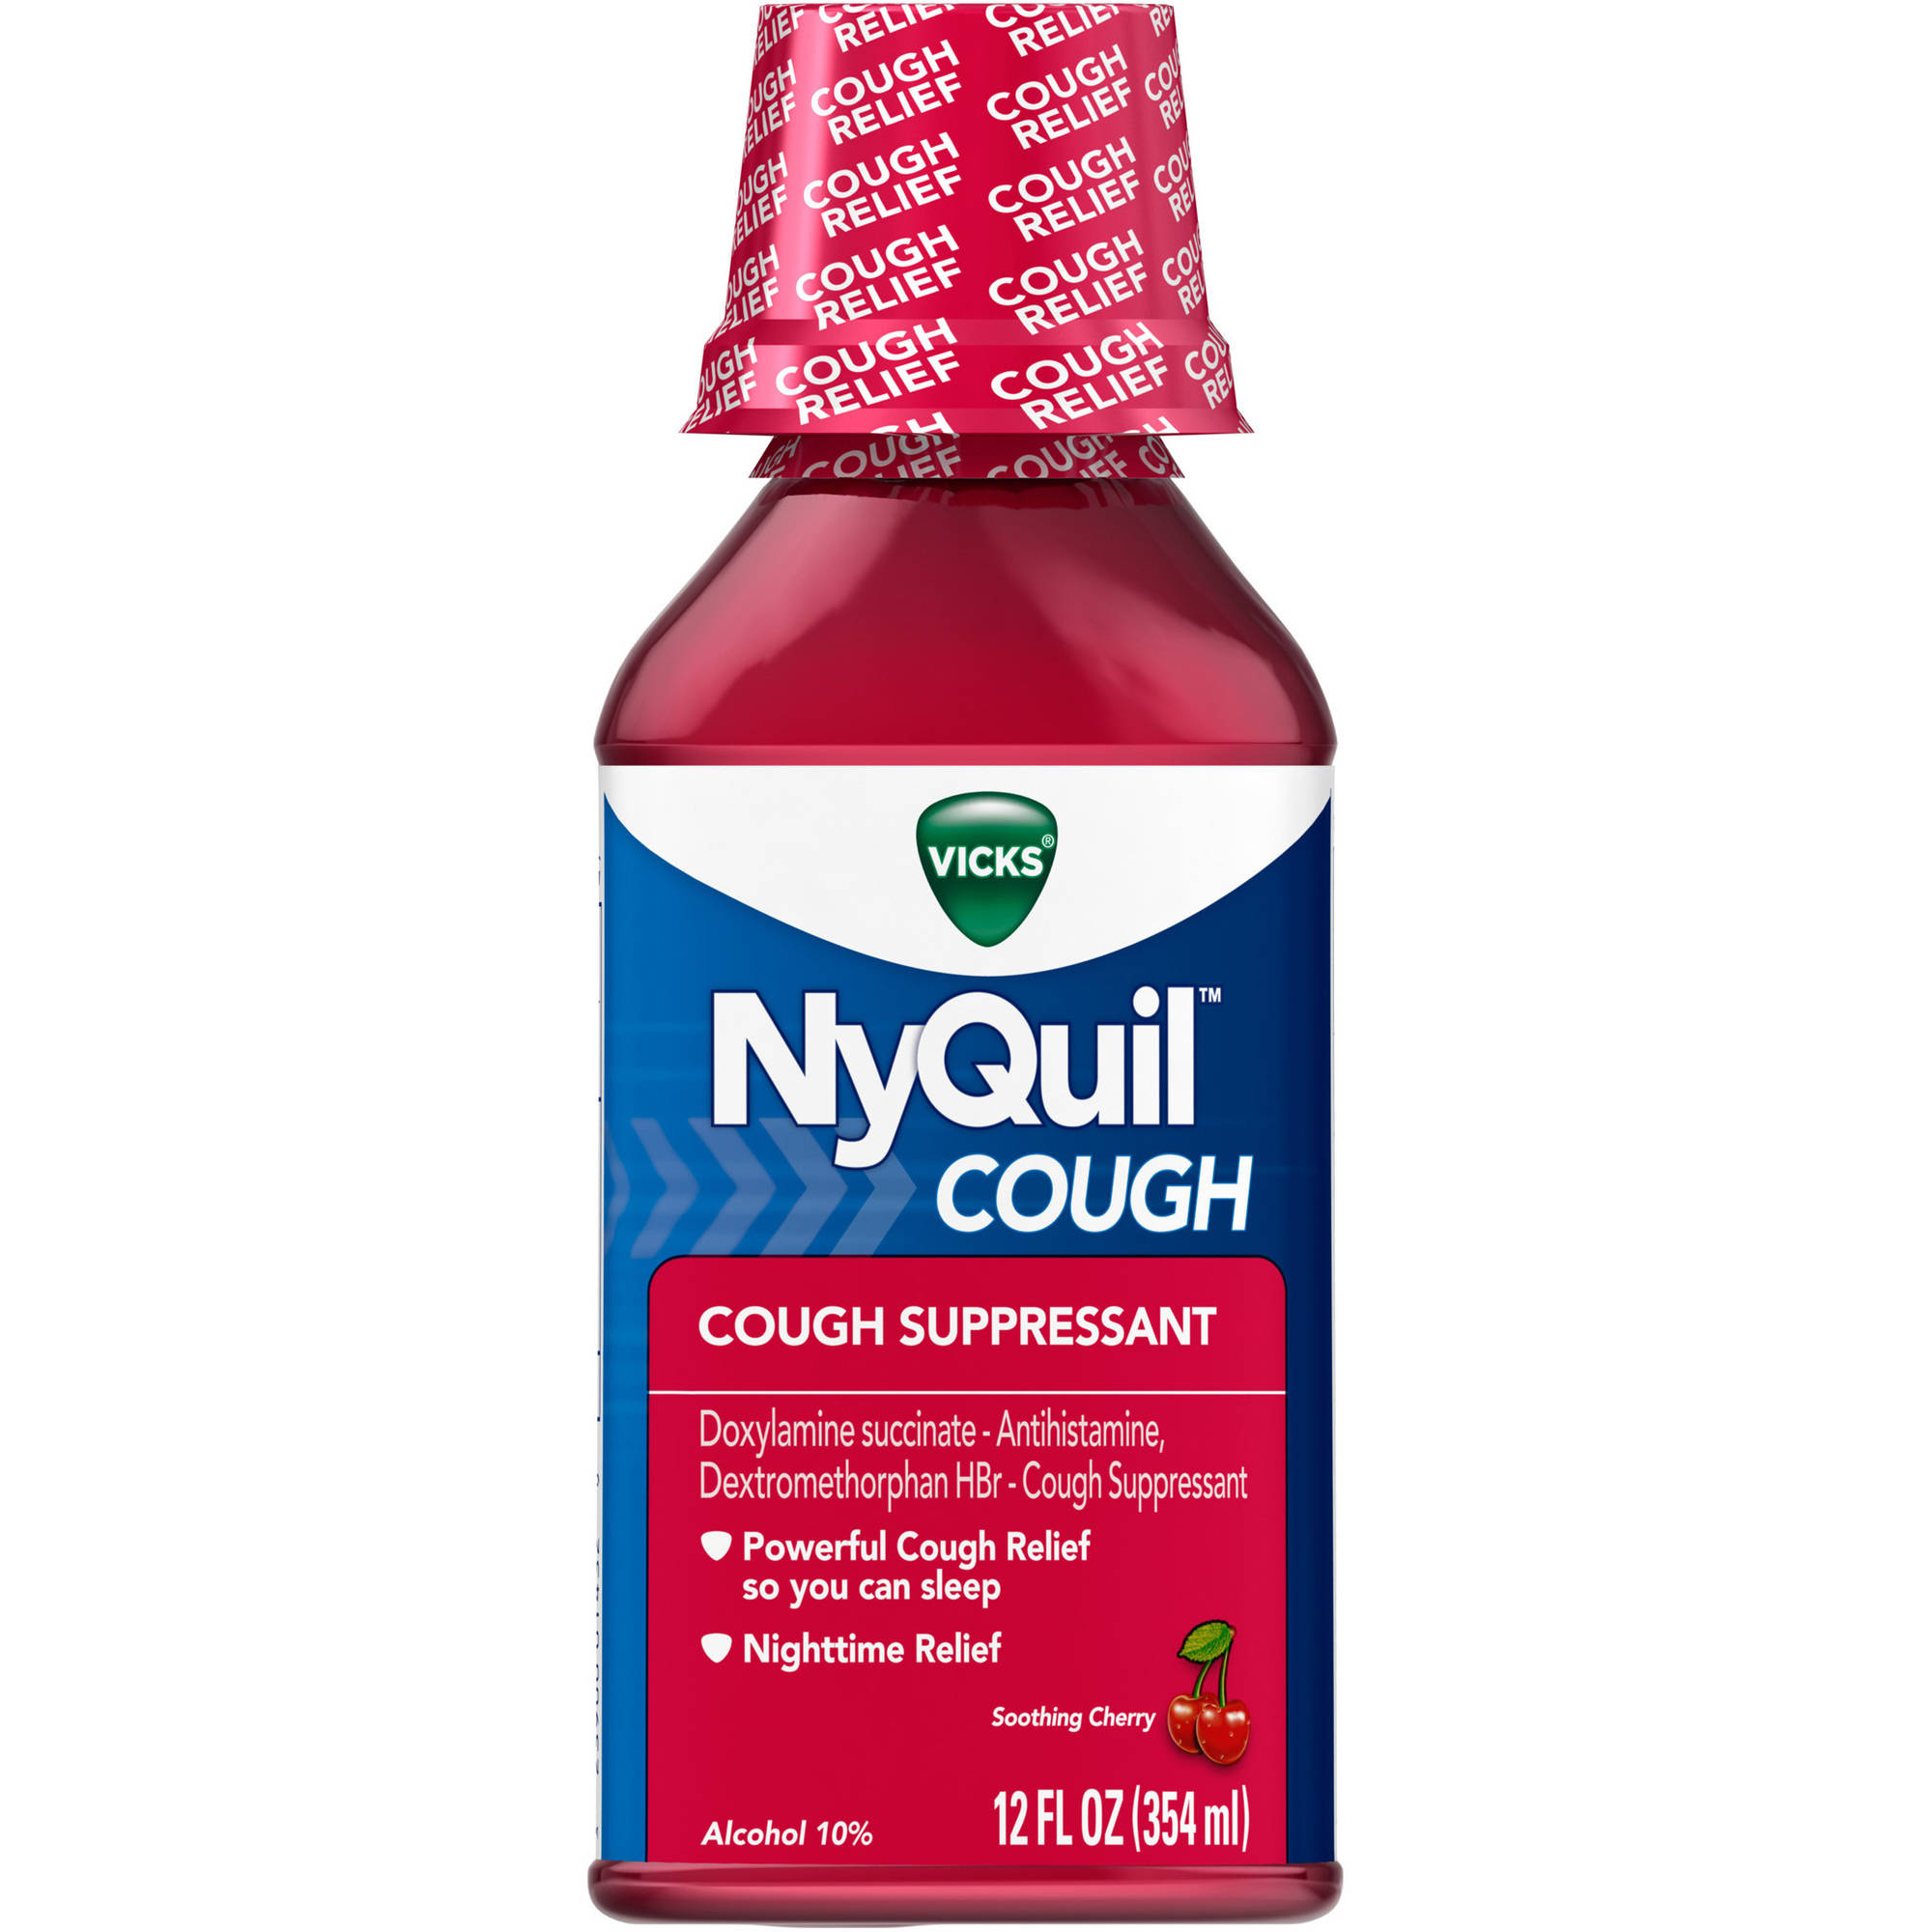 Vicks NyQuil Cough Soothing Cherry Liquid Cold Medicine, 12 fl oz